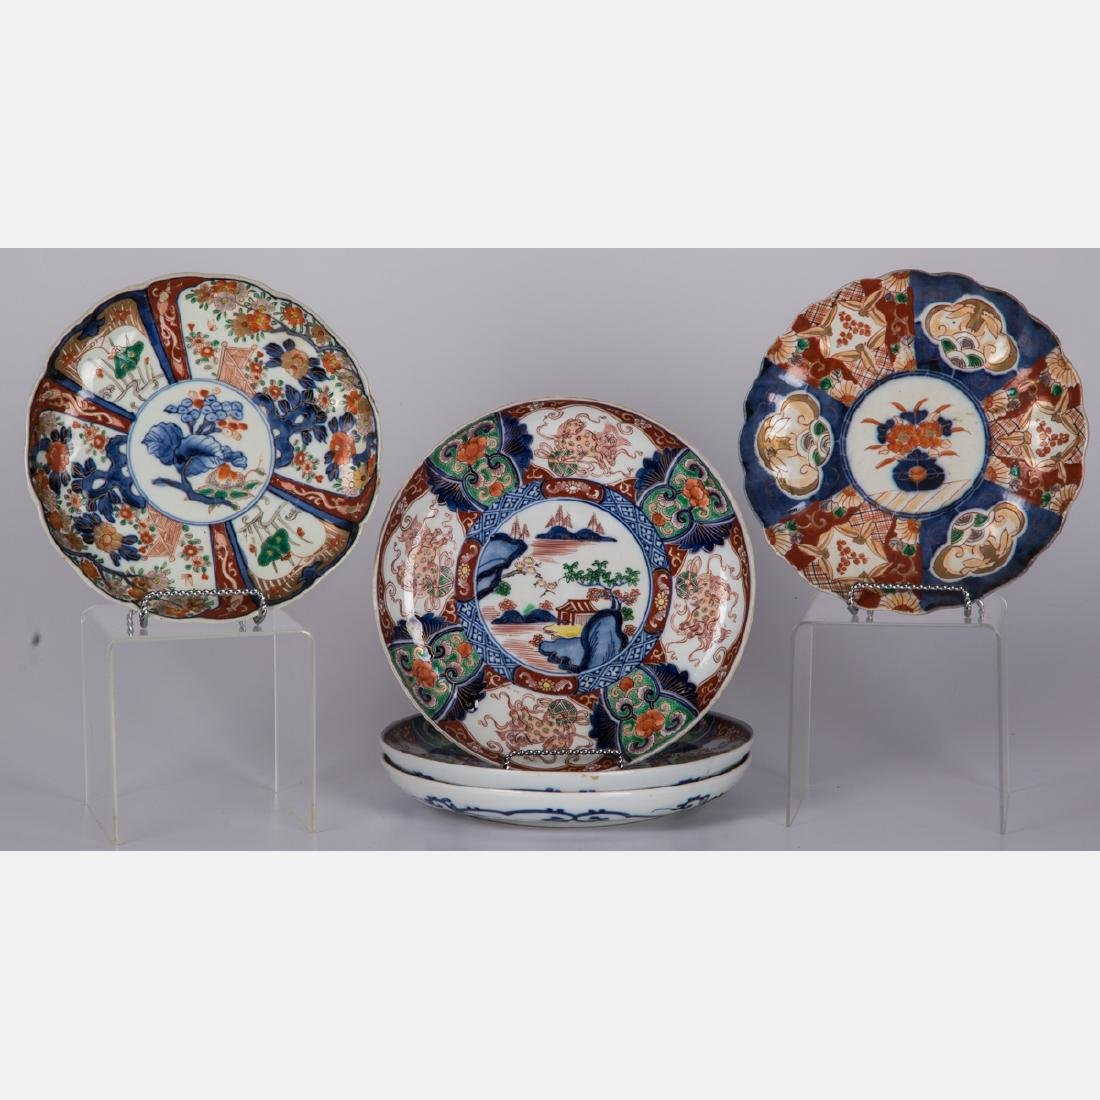 A Group of Five Japanese Imari Porcelain Plates, Meiji